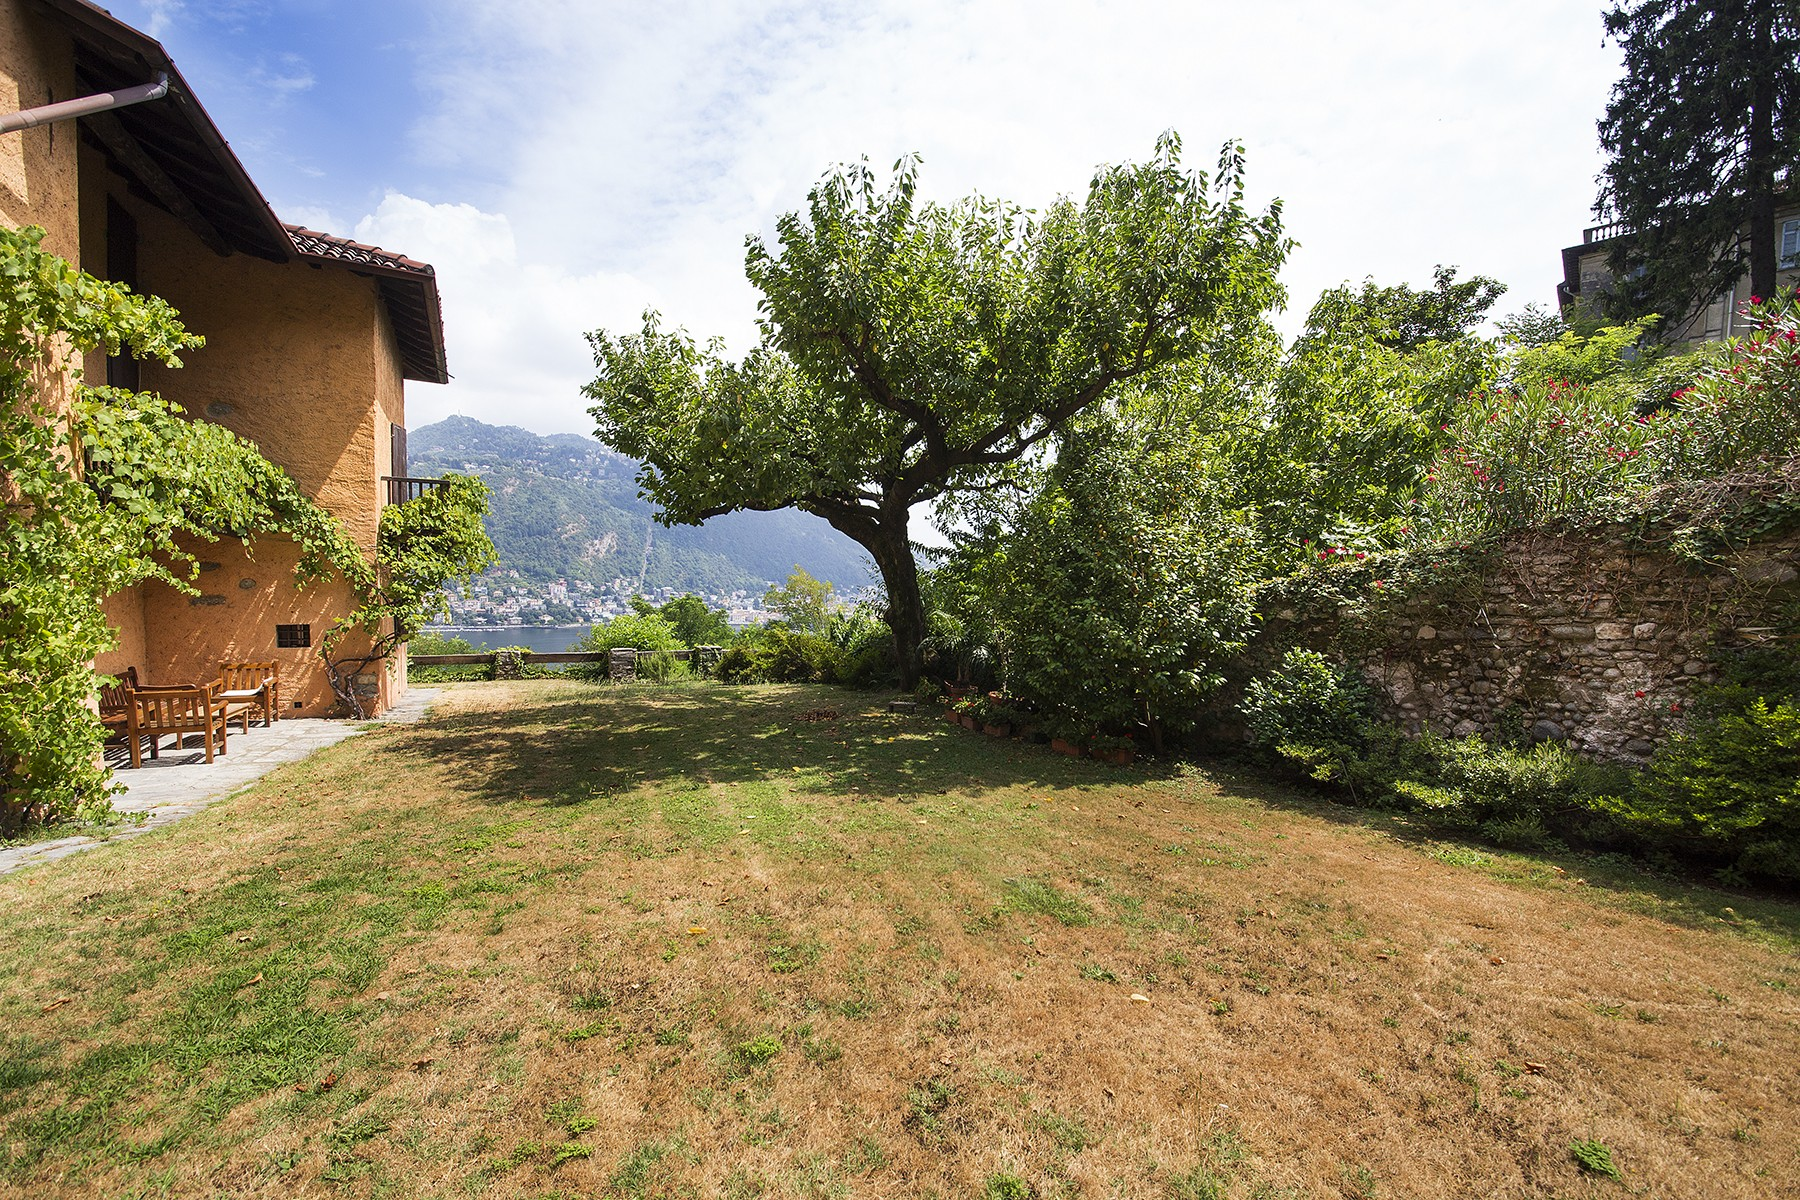 Additional photo for property listing at Charming villa on the hills of Como with breath-taking views Via Imbonati Como, Como 22100 Italie